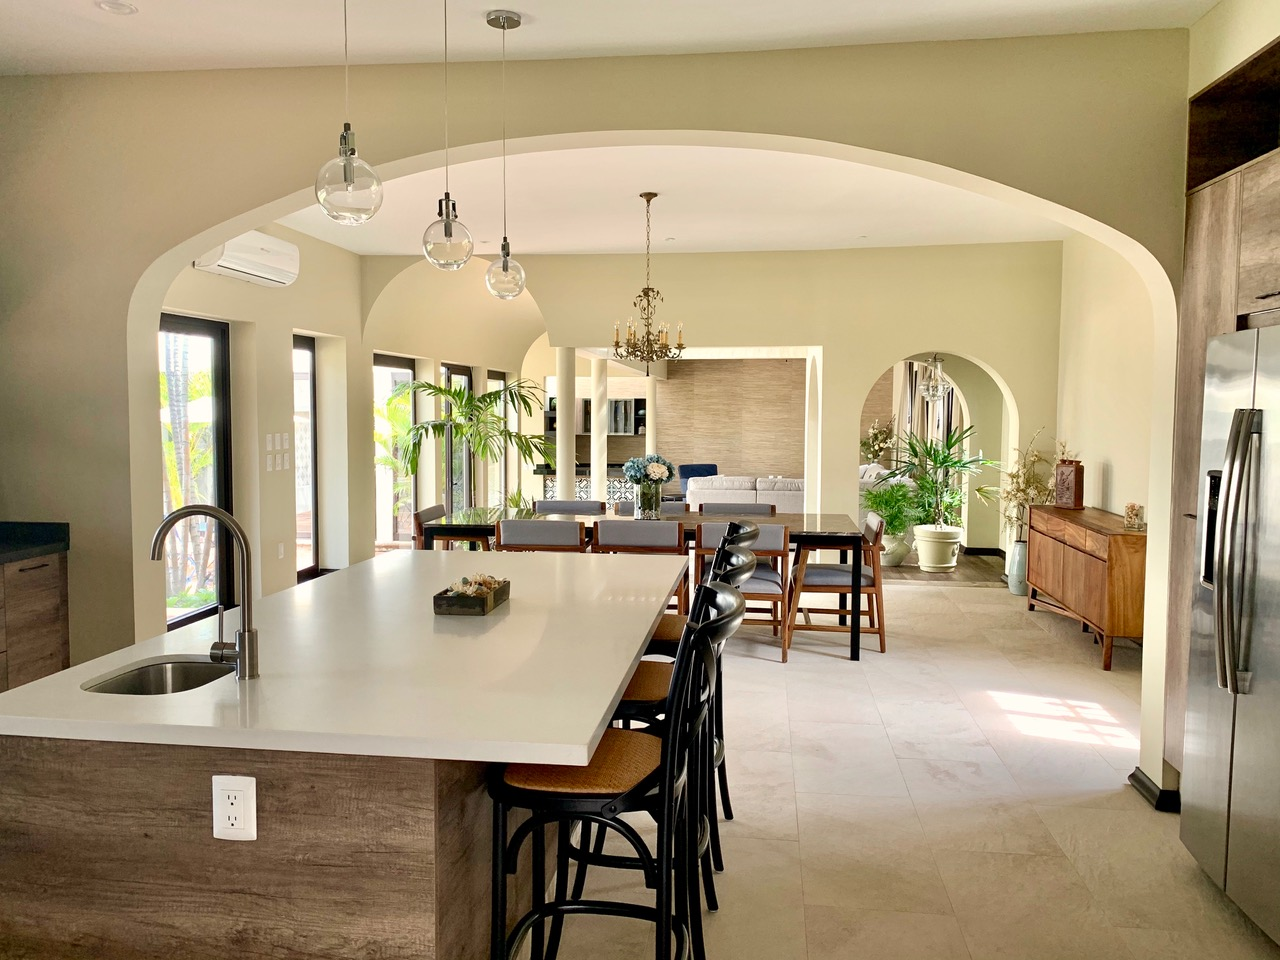 Open living spaces with natural light.